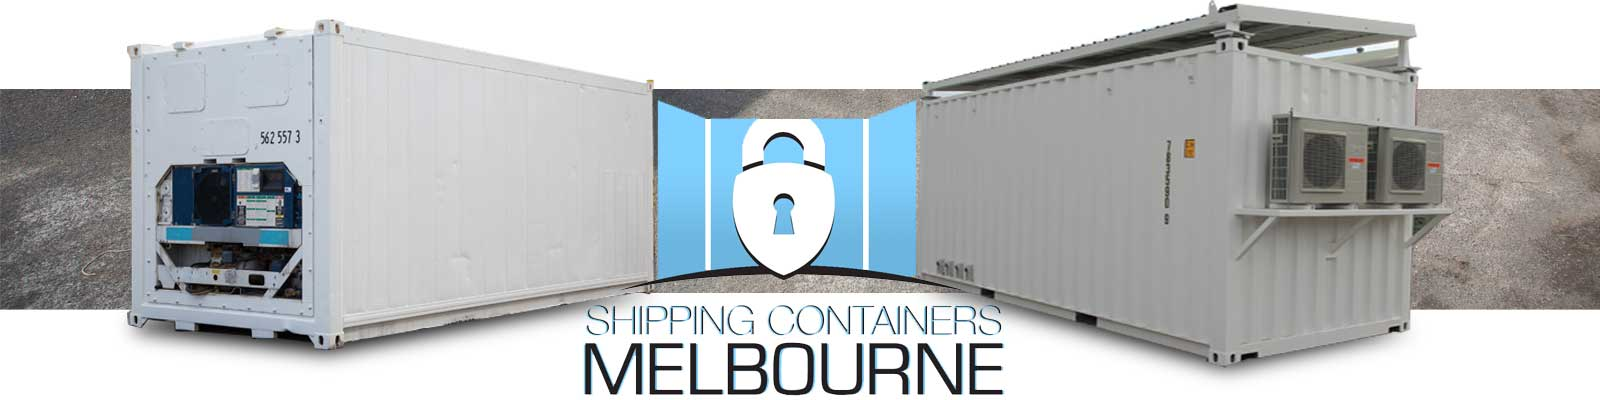 melbourne_containers